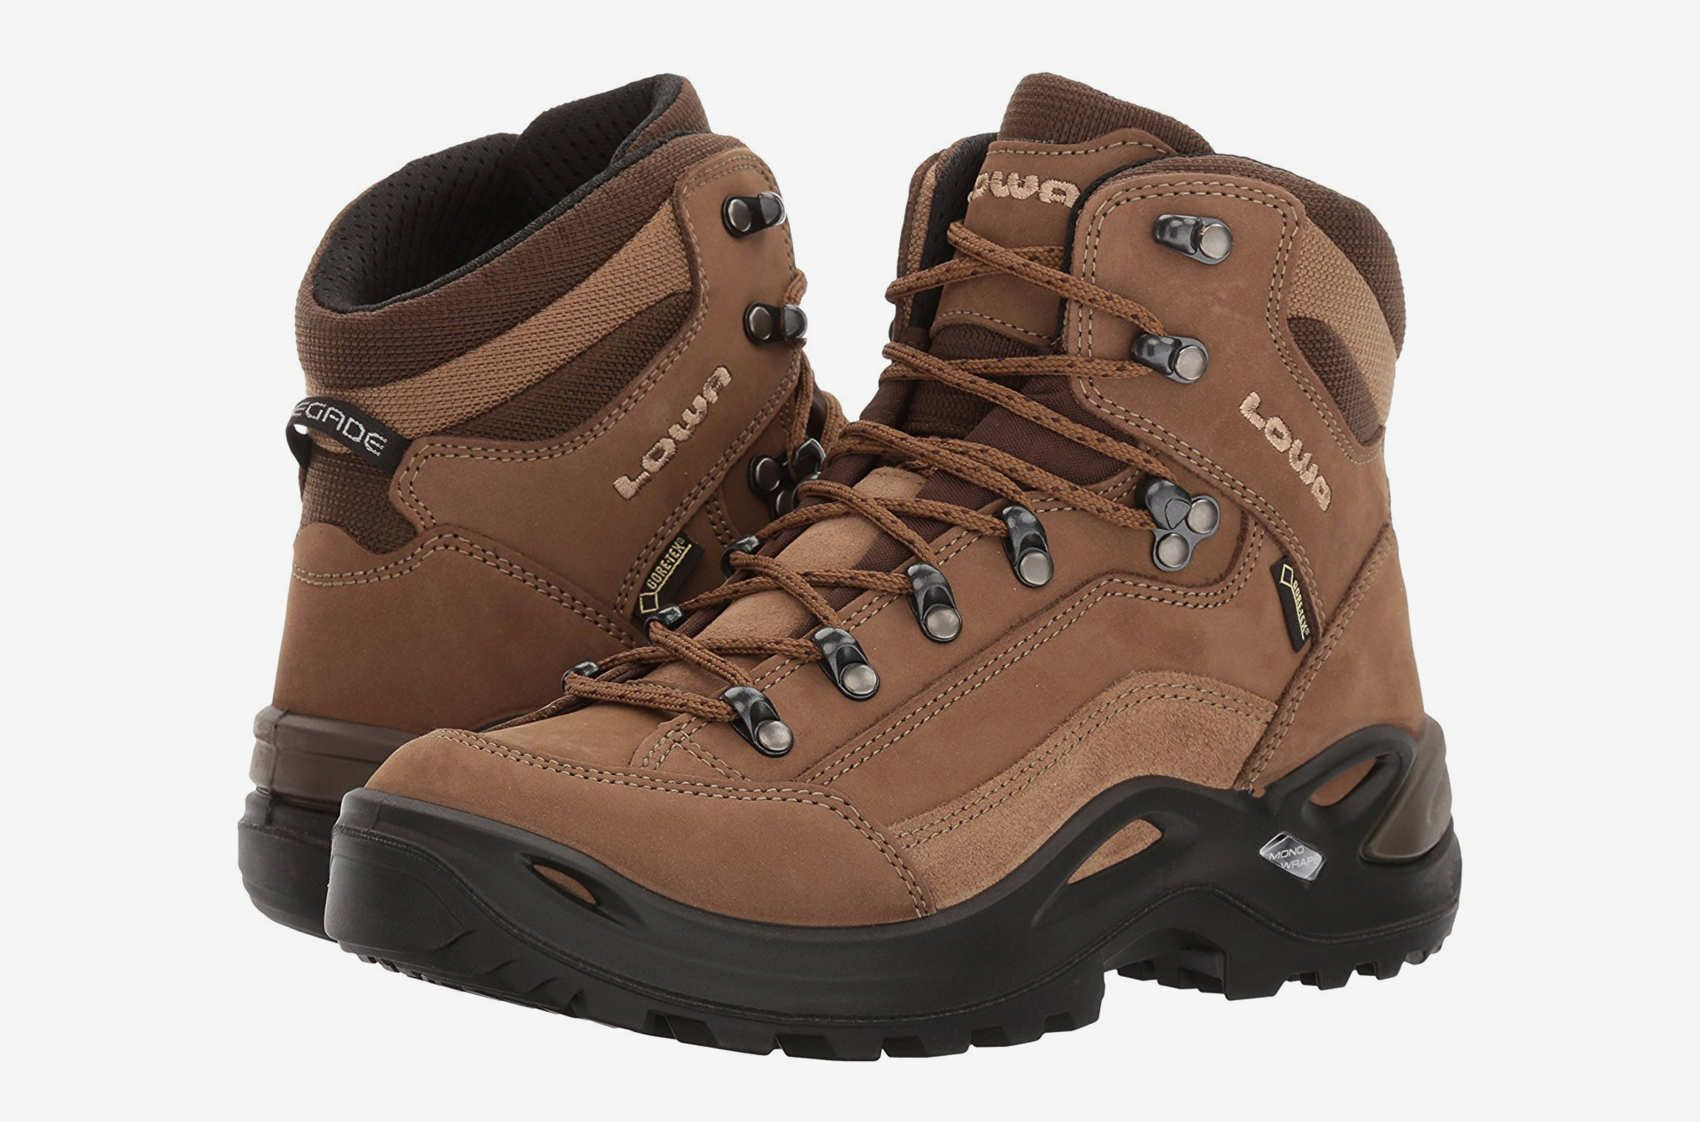 13 Best Hiking Boots for Women 2018